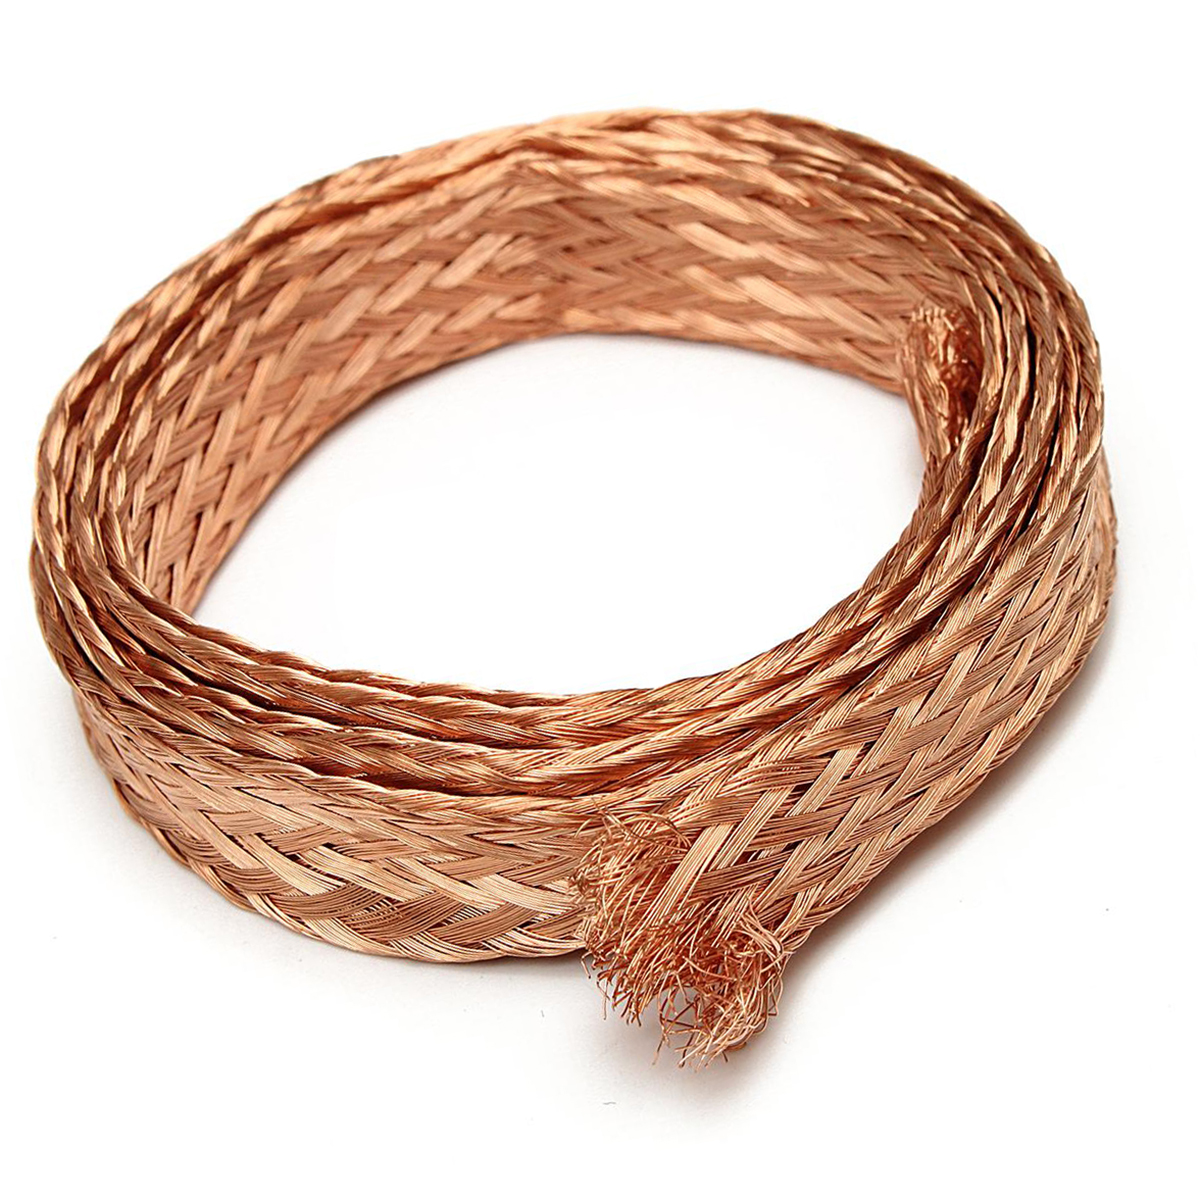 Mayitr 1m/3.3ft x 8mm Pure Copper Flat Braid Cable Bare Copper Braid Wire Ground Lead  1m 15mm flat tinned copper braid sleeve screening tubular cable diy